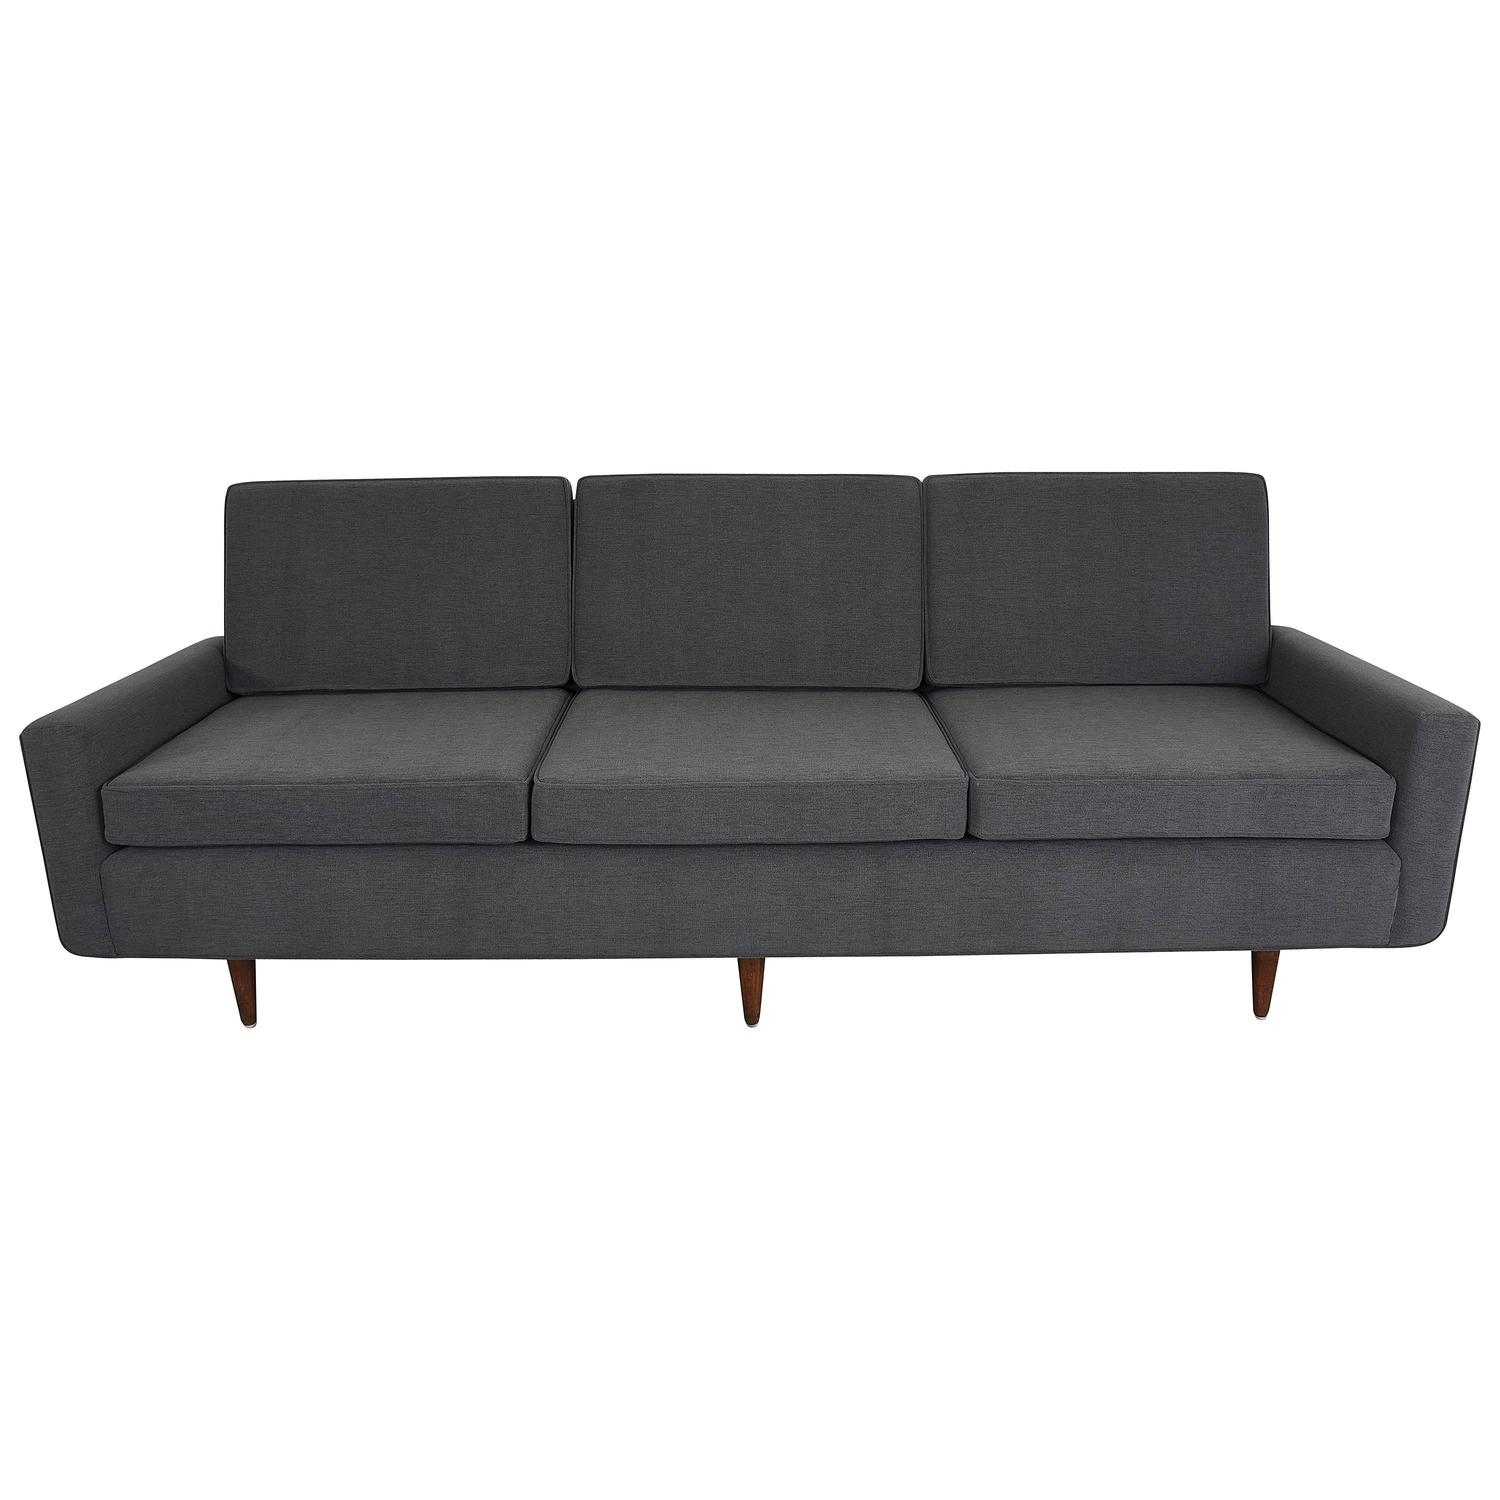 Florence Knoll Sofa Three Seat Sofa Model 26 Pair Available For Intended For Florence Knoll Leather Sofas (View 6 of 15)